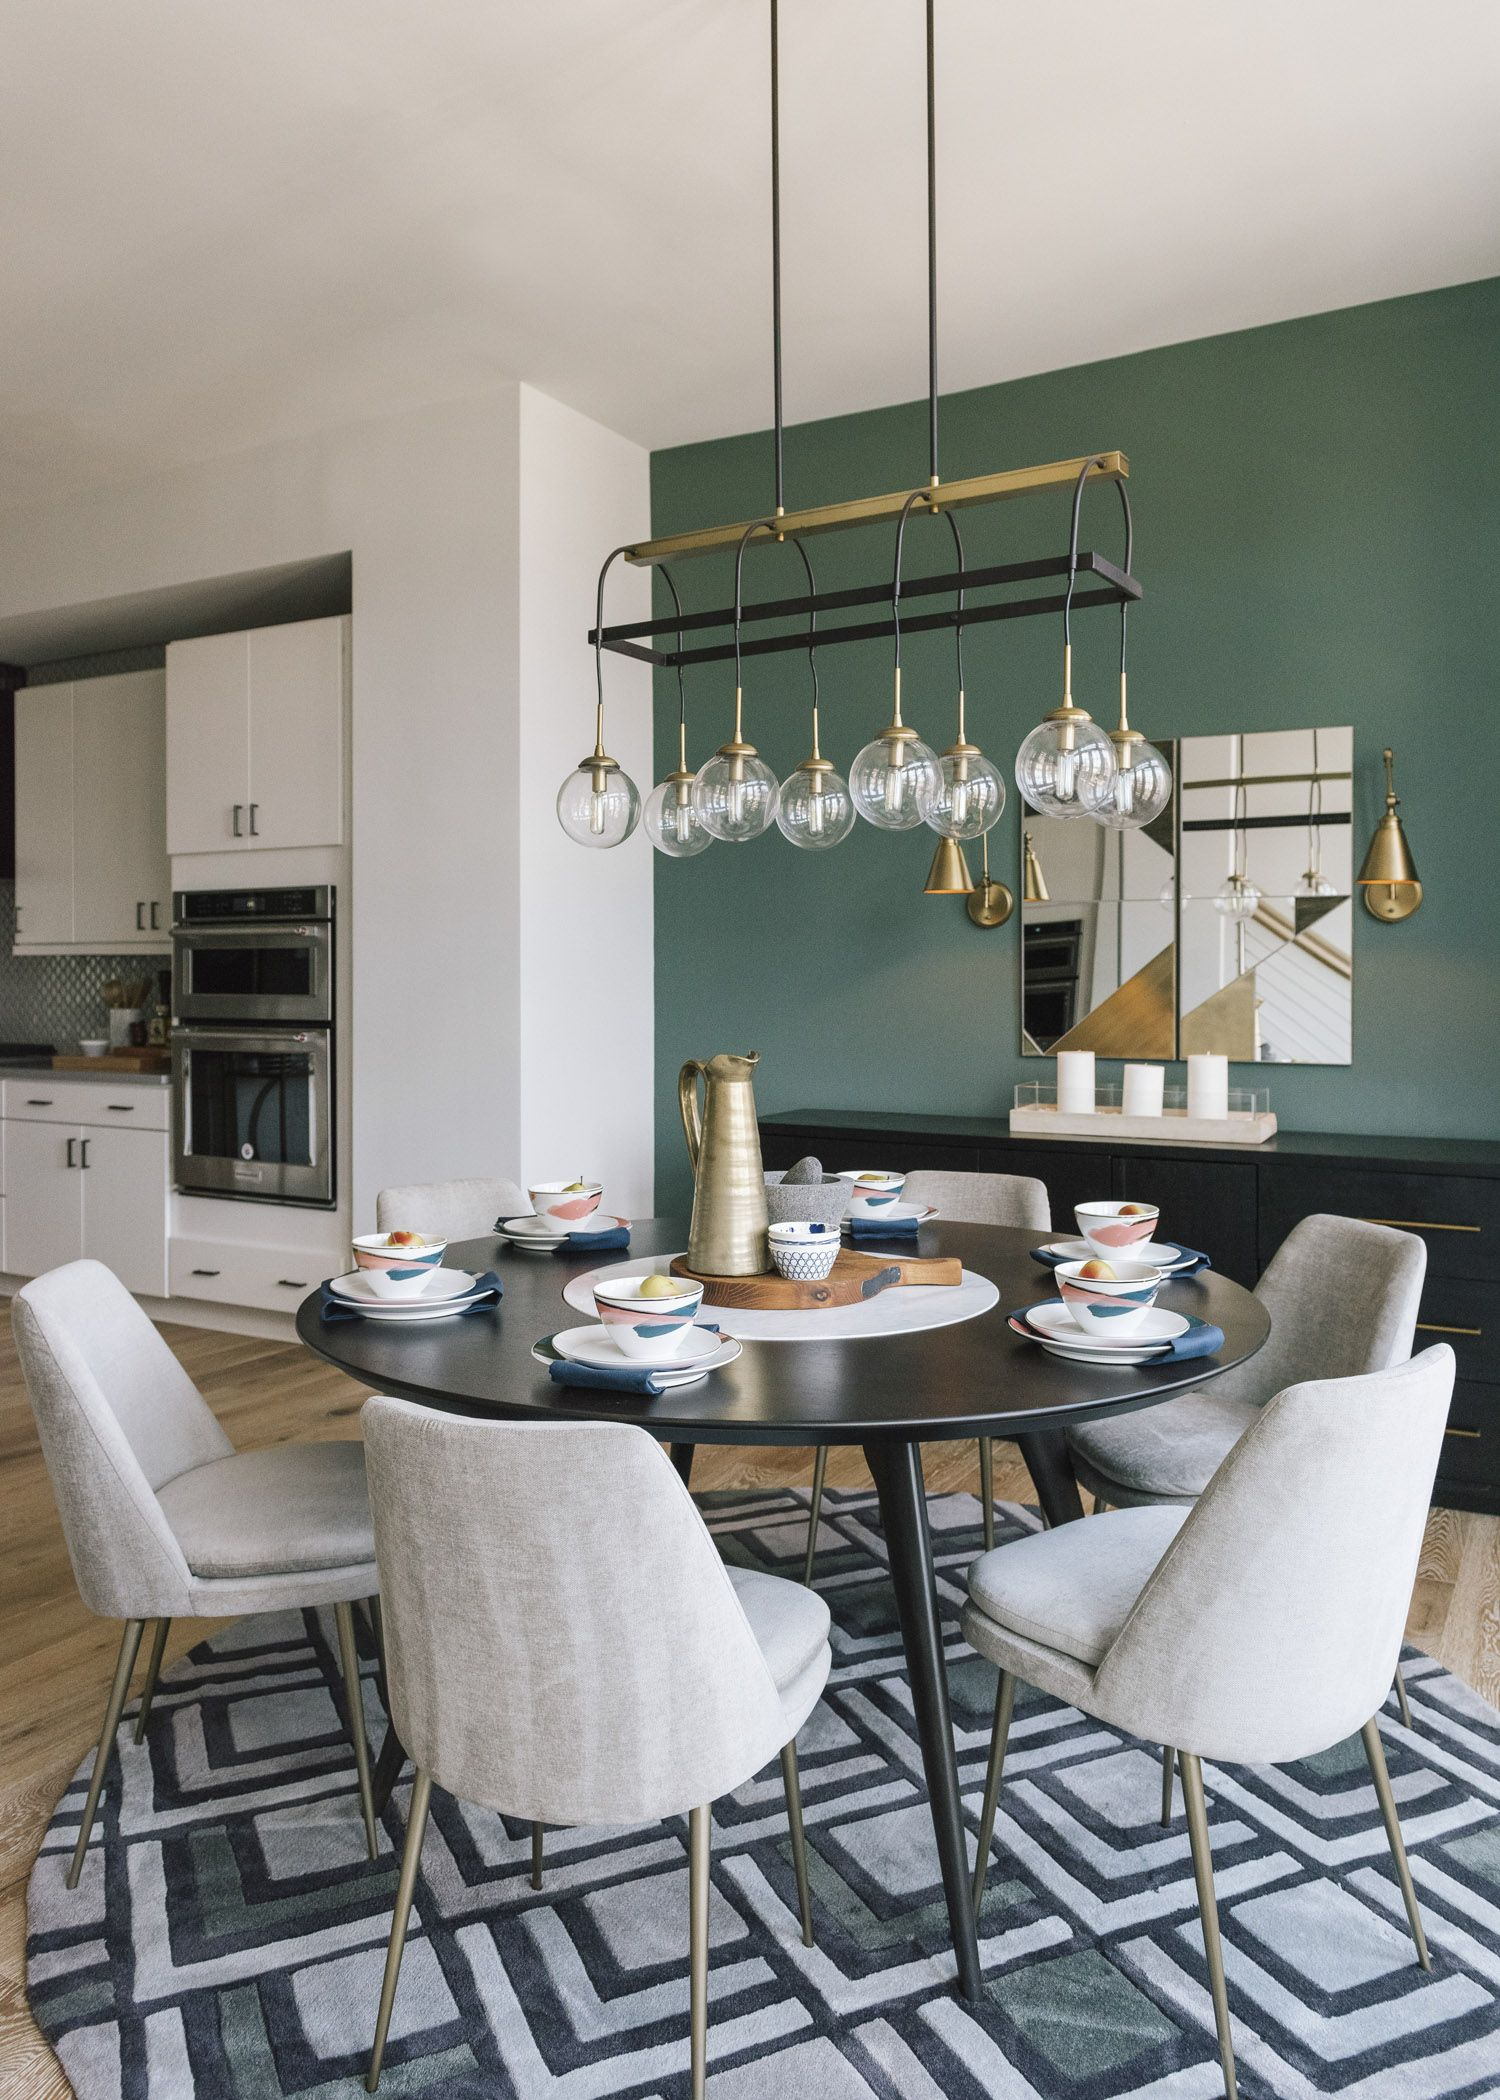 Four-Story Townhome Outfitted To Inspire - Front + Main à On Dine À La Cheminée